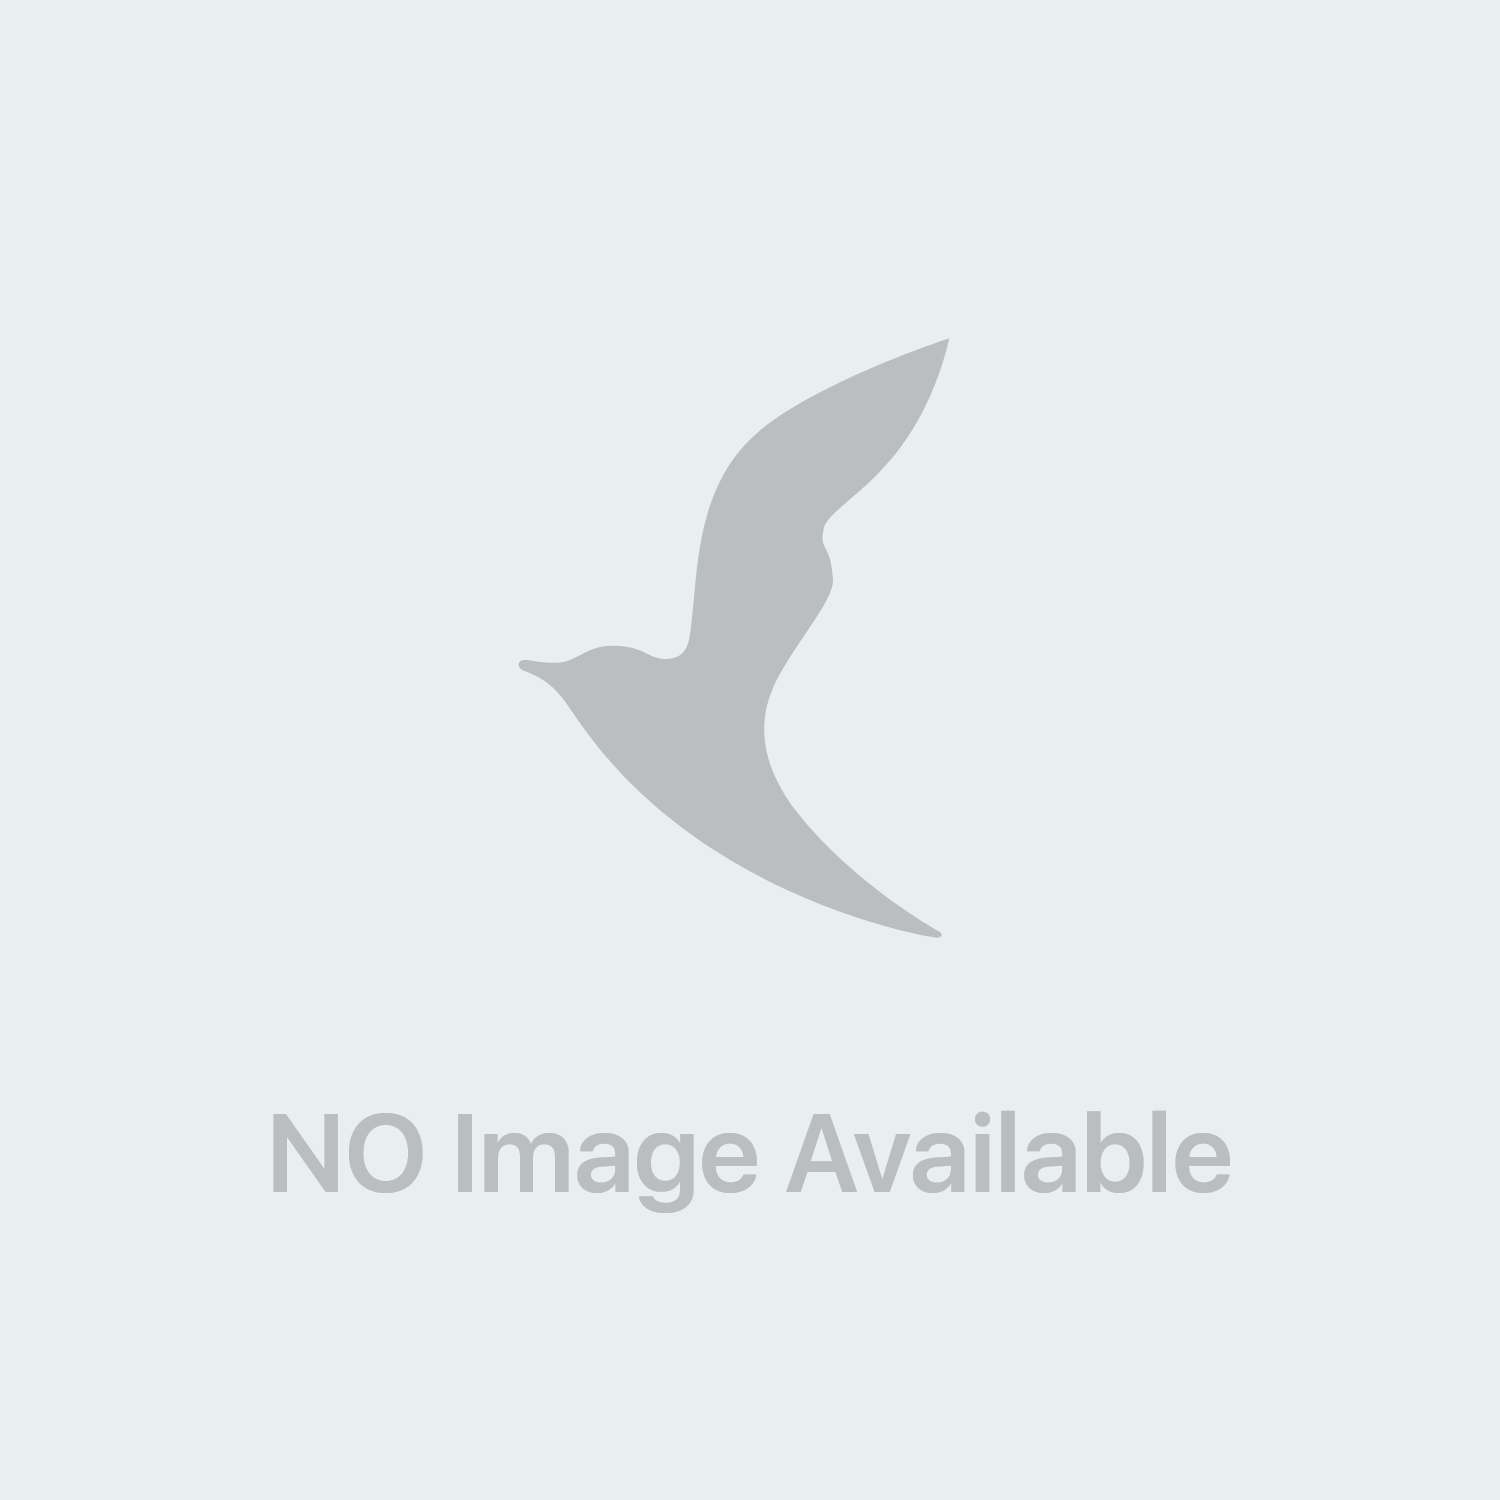 Image of Esi GinsengPlus Integratore Energizzante 16 Pocket Drink